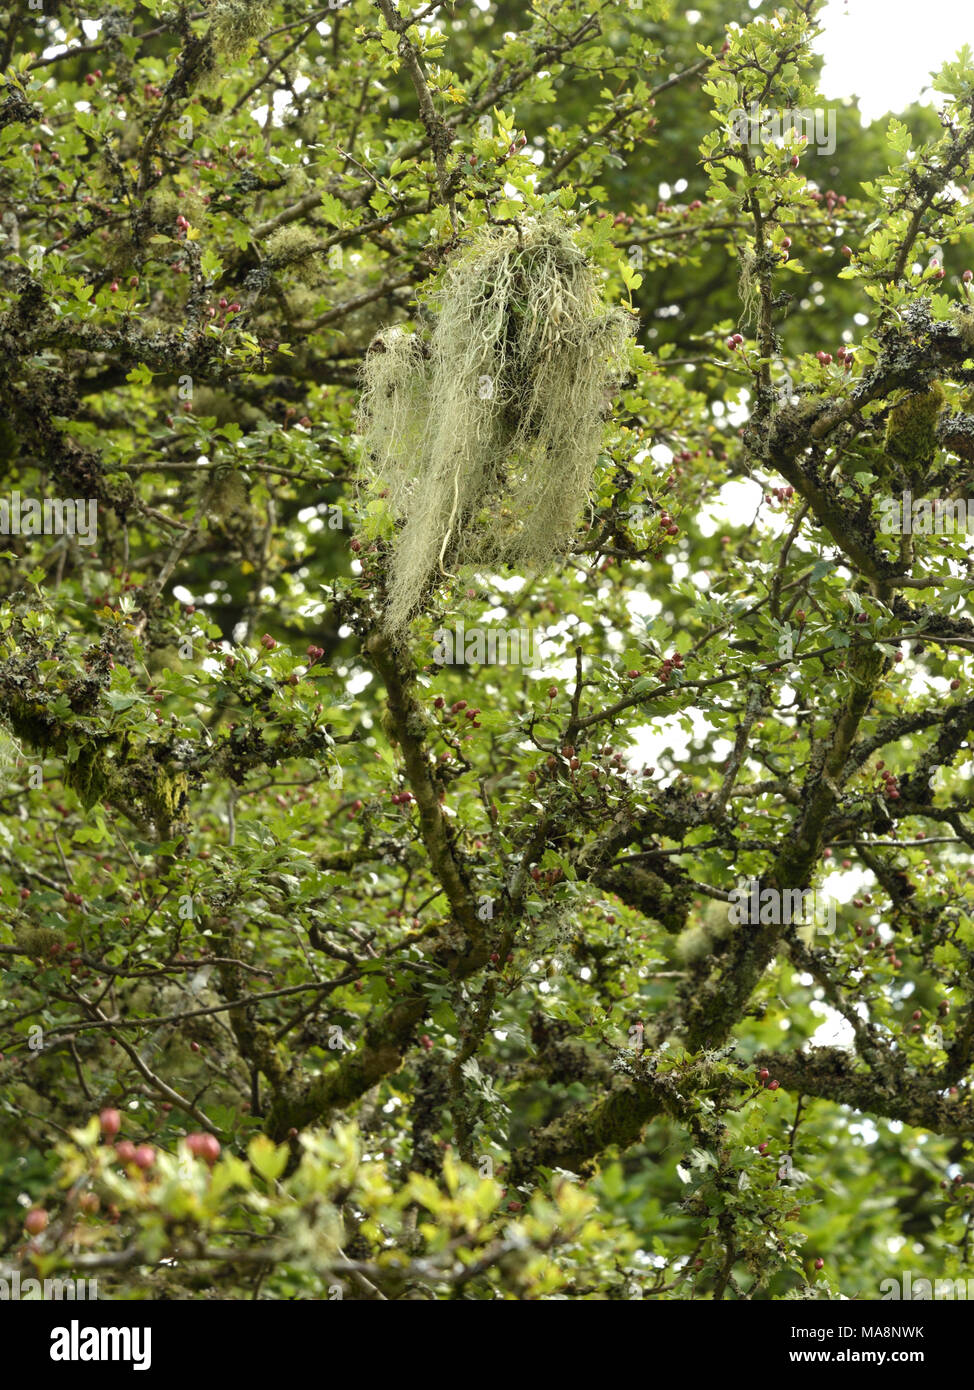 String-of-sausage lichen on a Hawthorn, Usnea articulata - Stock Image